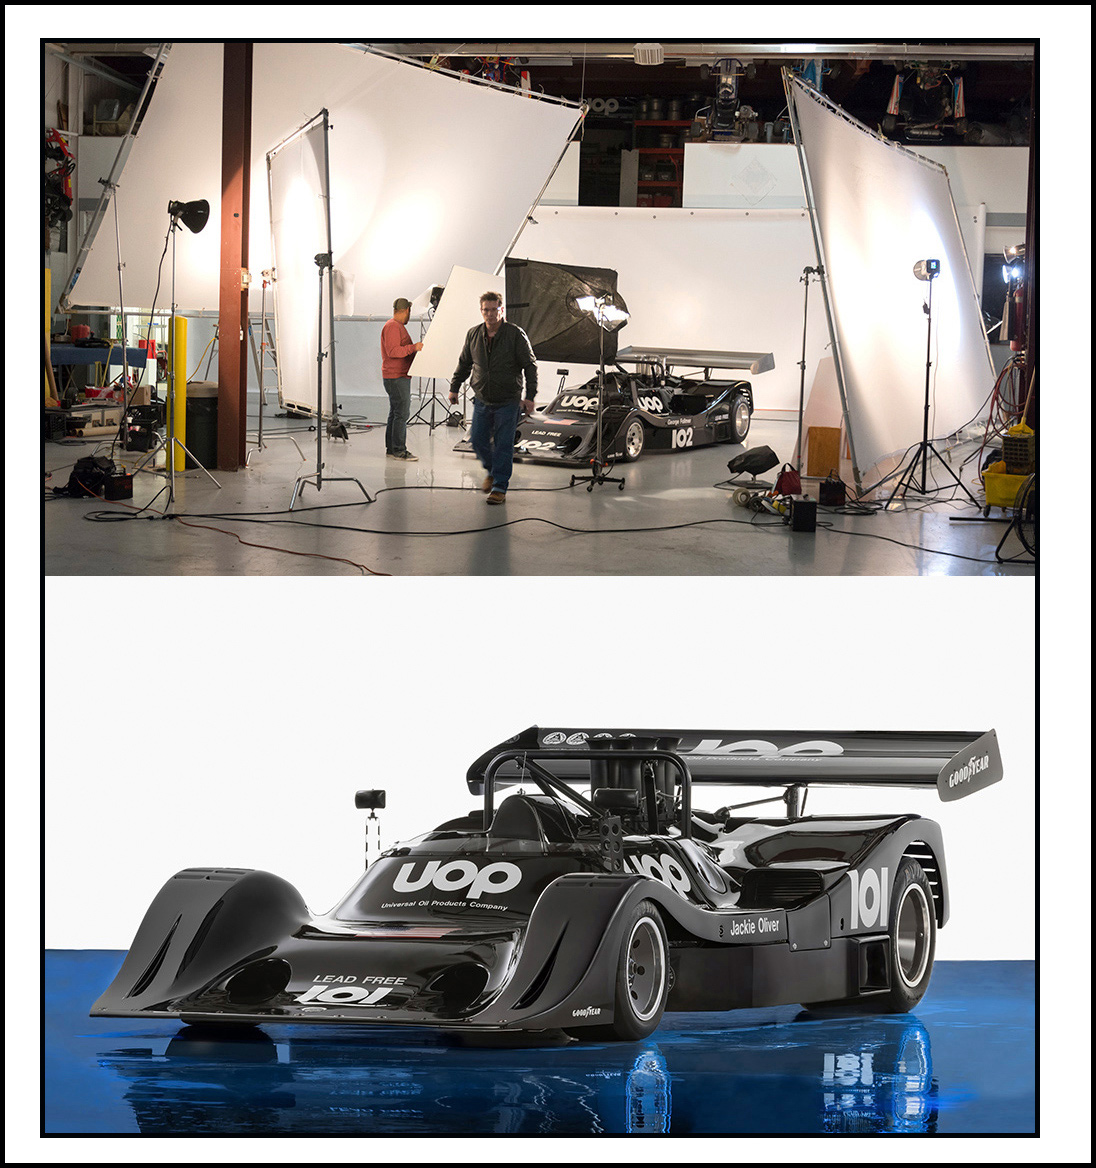 race car photography in a photo studio